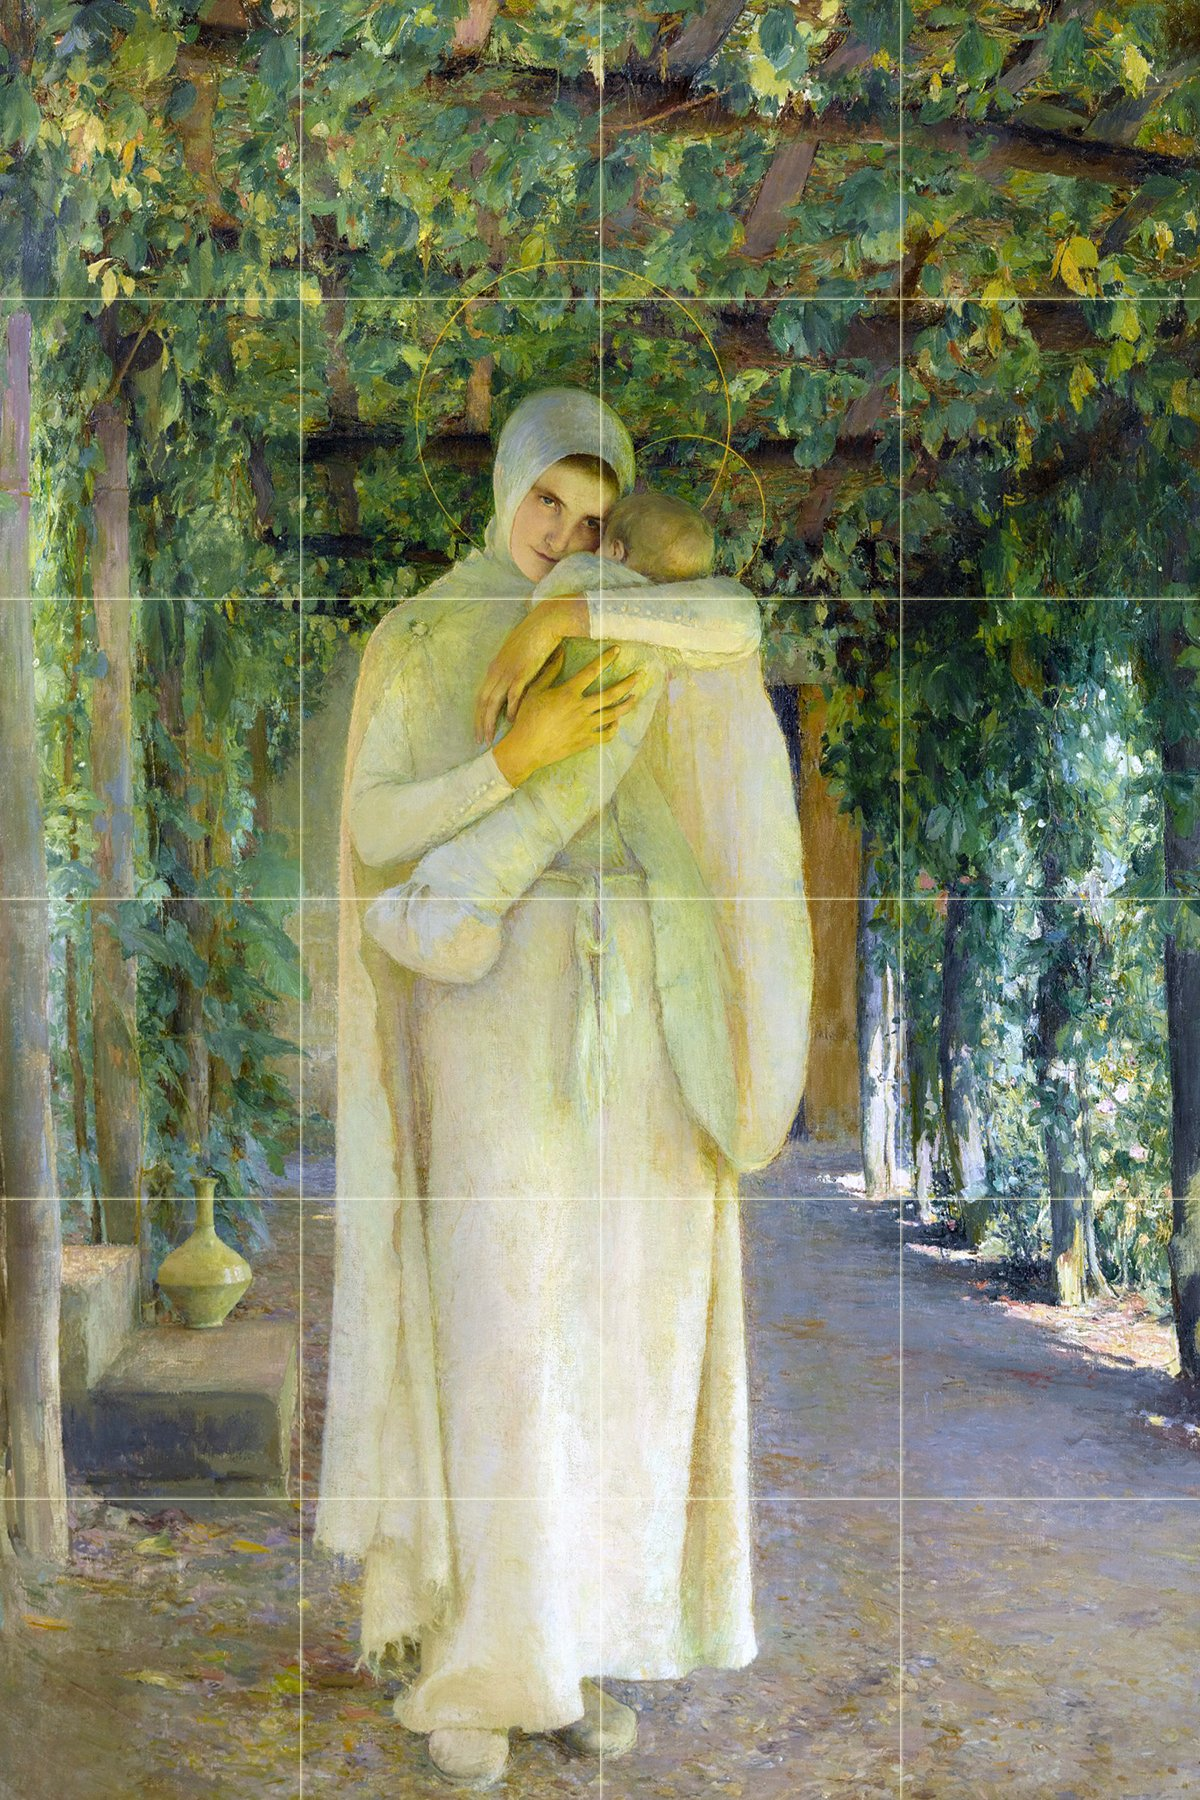 Tile Mural MADONE by Pascal Adolphe Jean Dagnan-Bouveret girl woman child Kitchen Bathroom Shower Wall Backsplash Splashback 4x6 4'' Marble, Matte by FlekmanArt